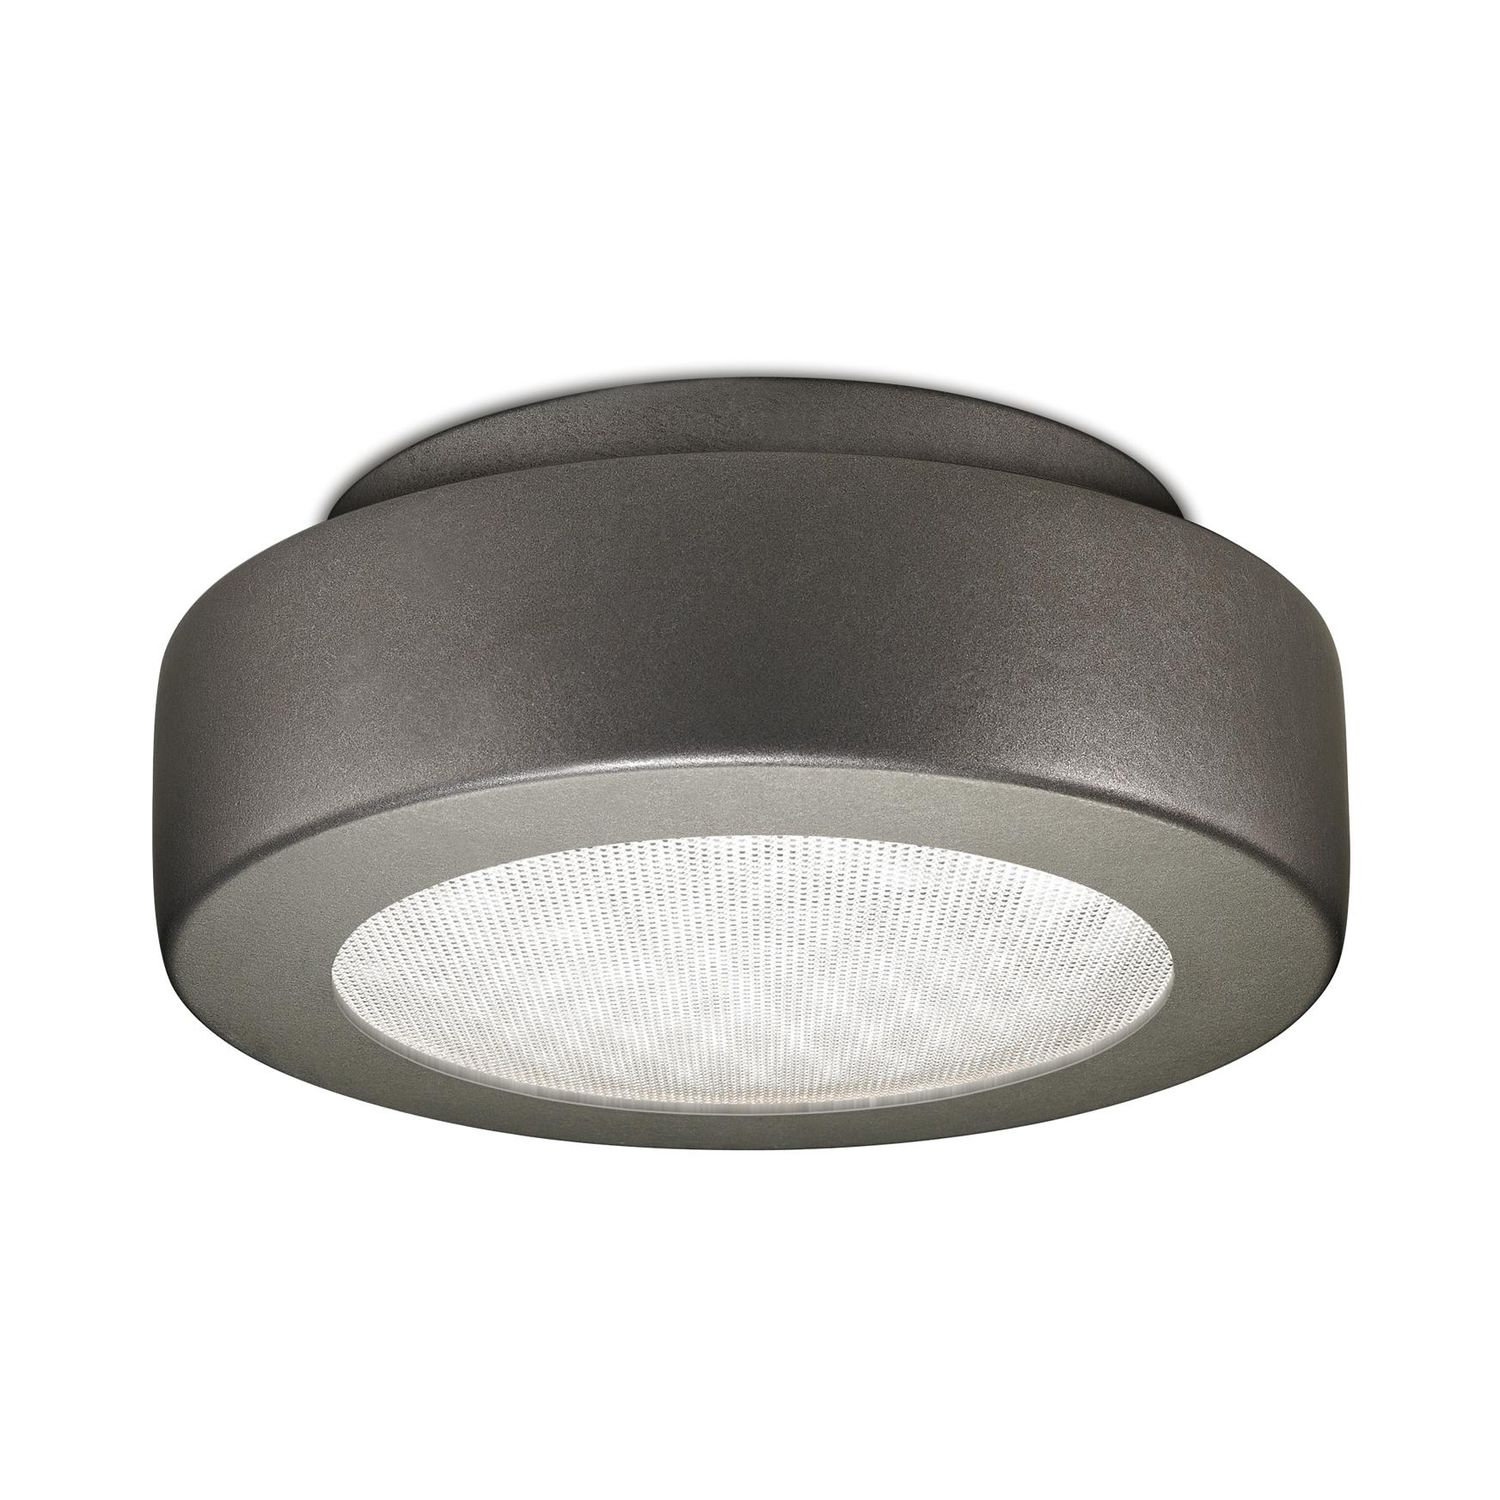 Amazing Surface Mounted Downlight / For Outdoor Use / LED / Round   HOCKEY CEILING